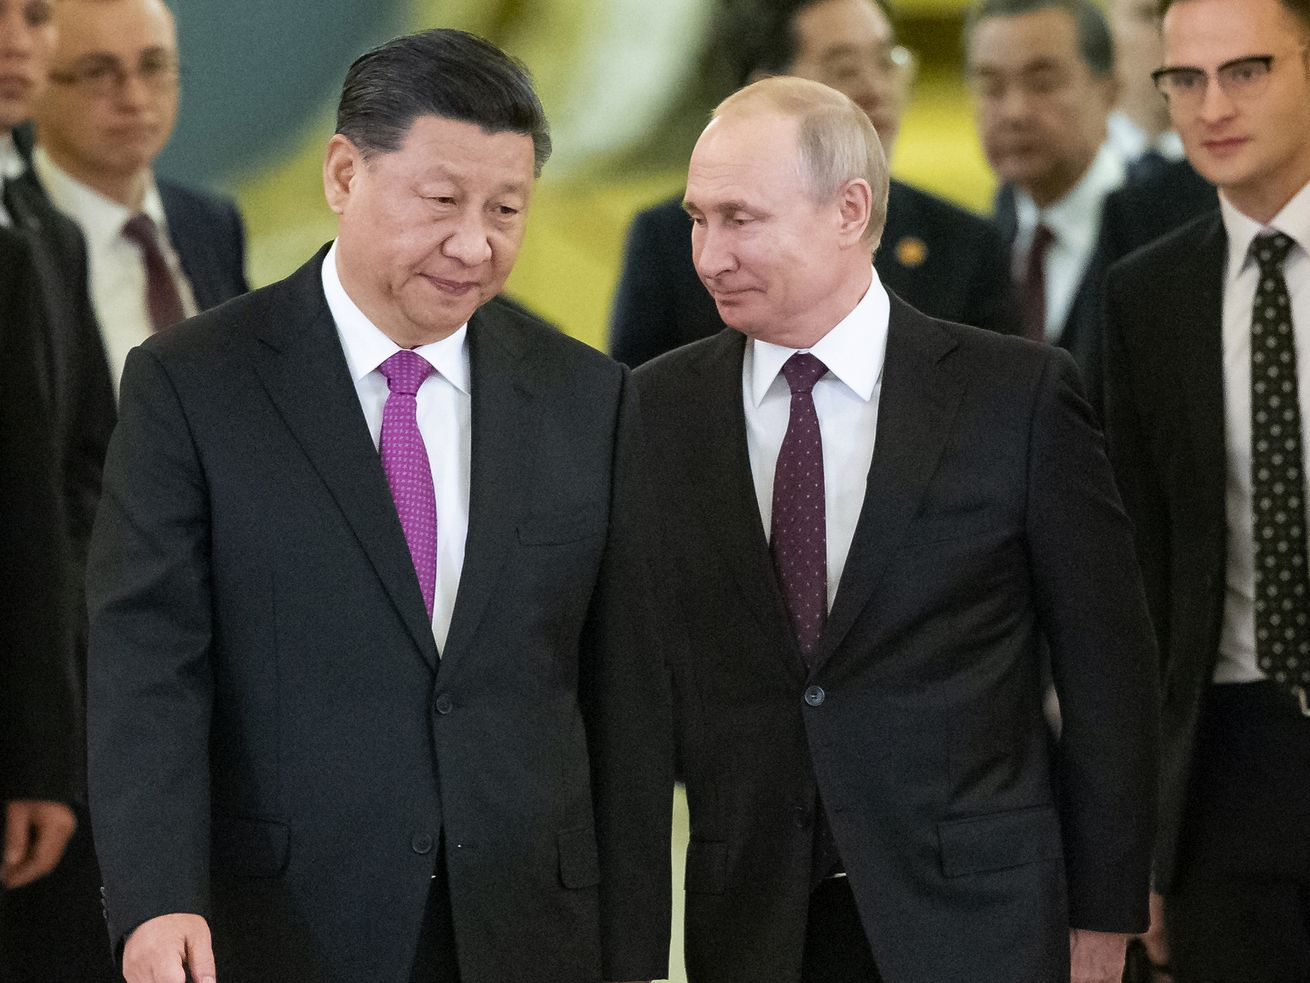 """In this June 5, 2019, file photo, Russian President Vladimir Putin, center right, and Chinese President Xi Jinping, center left, enter a hall for talks in the Kremlin in Moscow, Russia. Putin and Xi have developed strong personal ties helping bolster a """"strategic partnership"""" between the two former Communist rivals."""